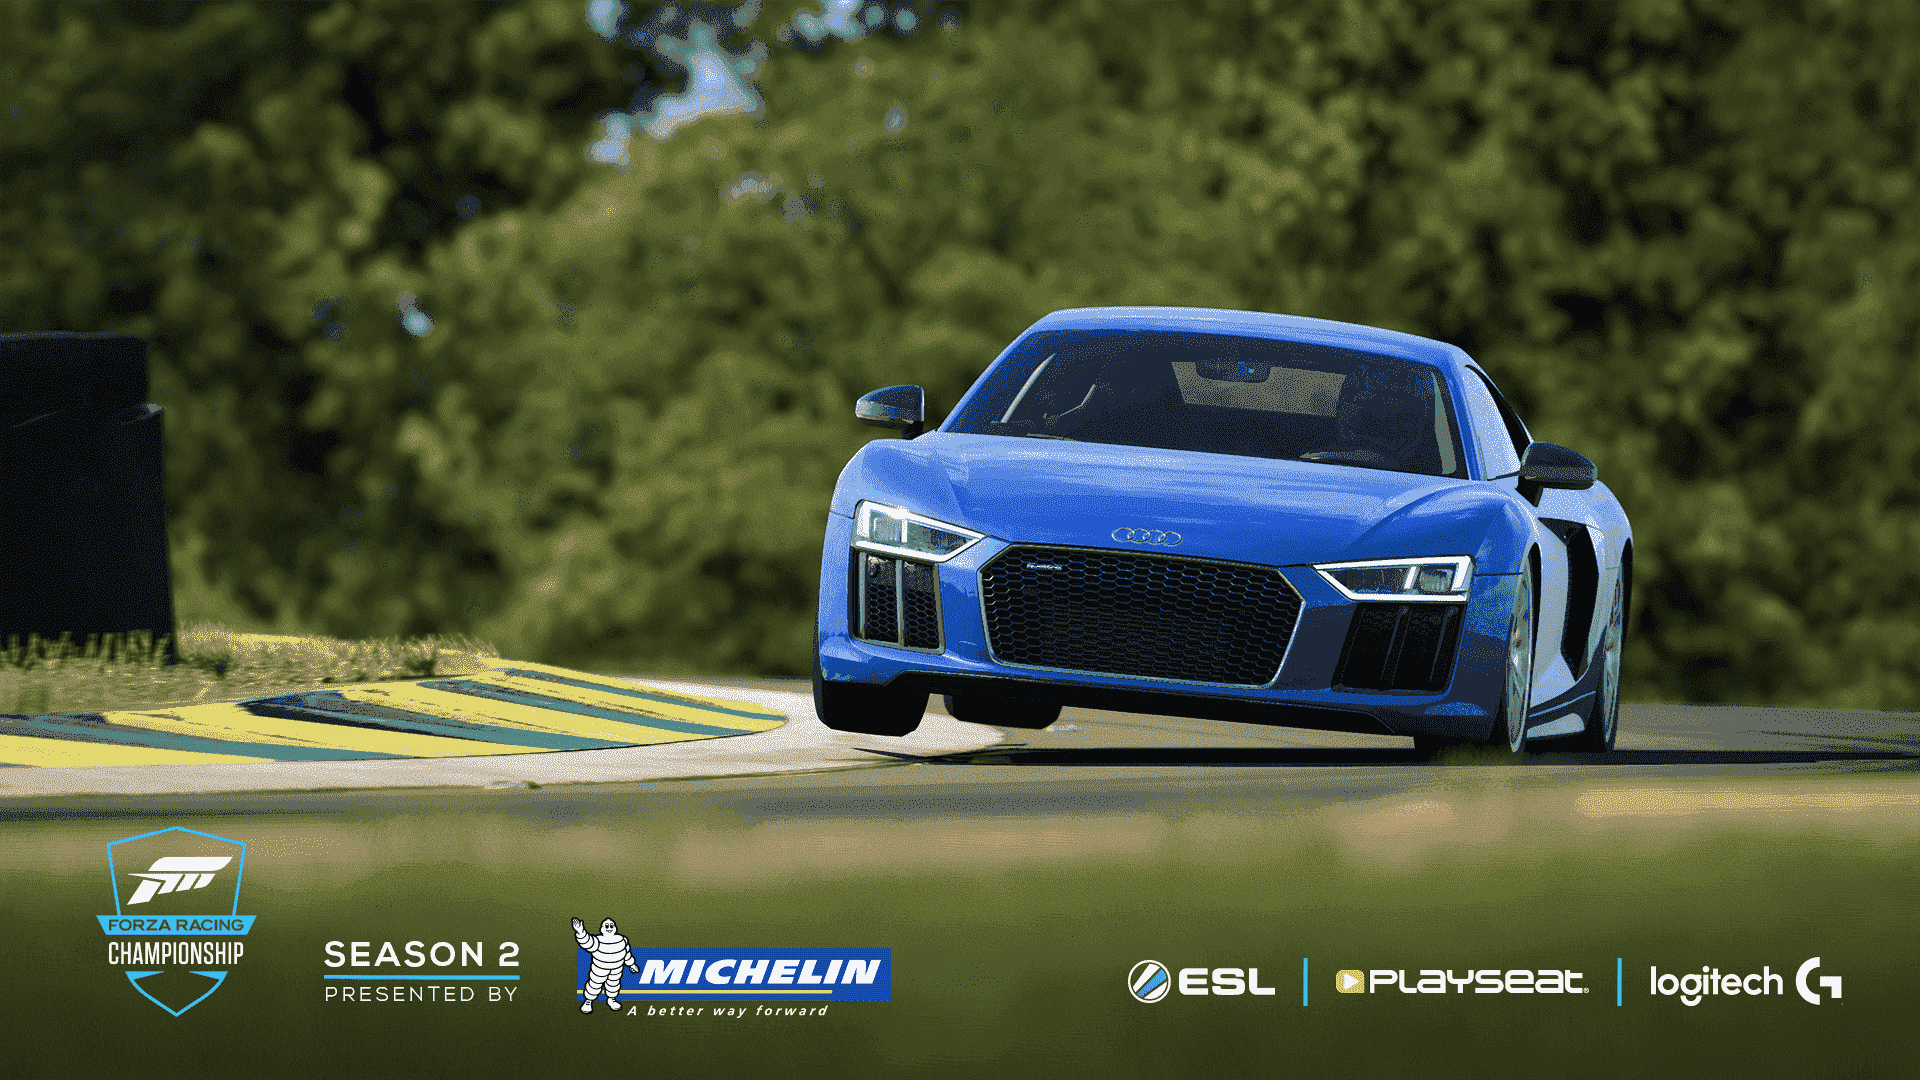 Forza 7 black screens after a rivals race. Audi_R8V10Plus_02_FRC-S2_WM-All.png